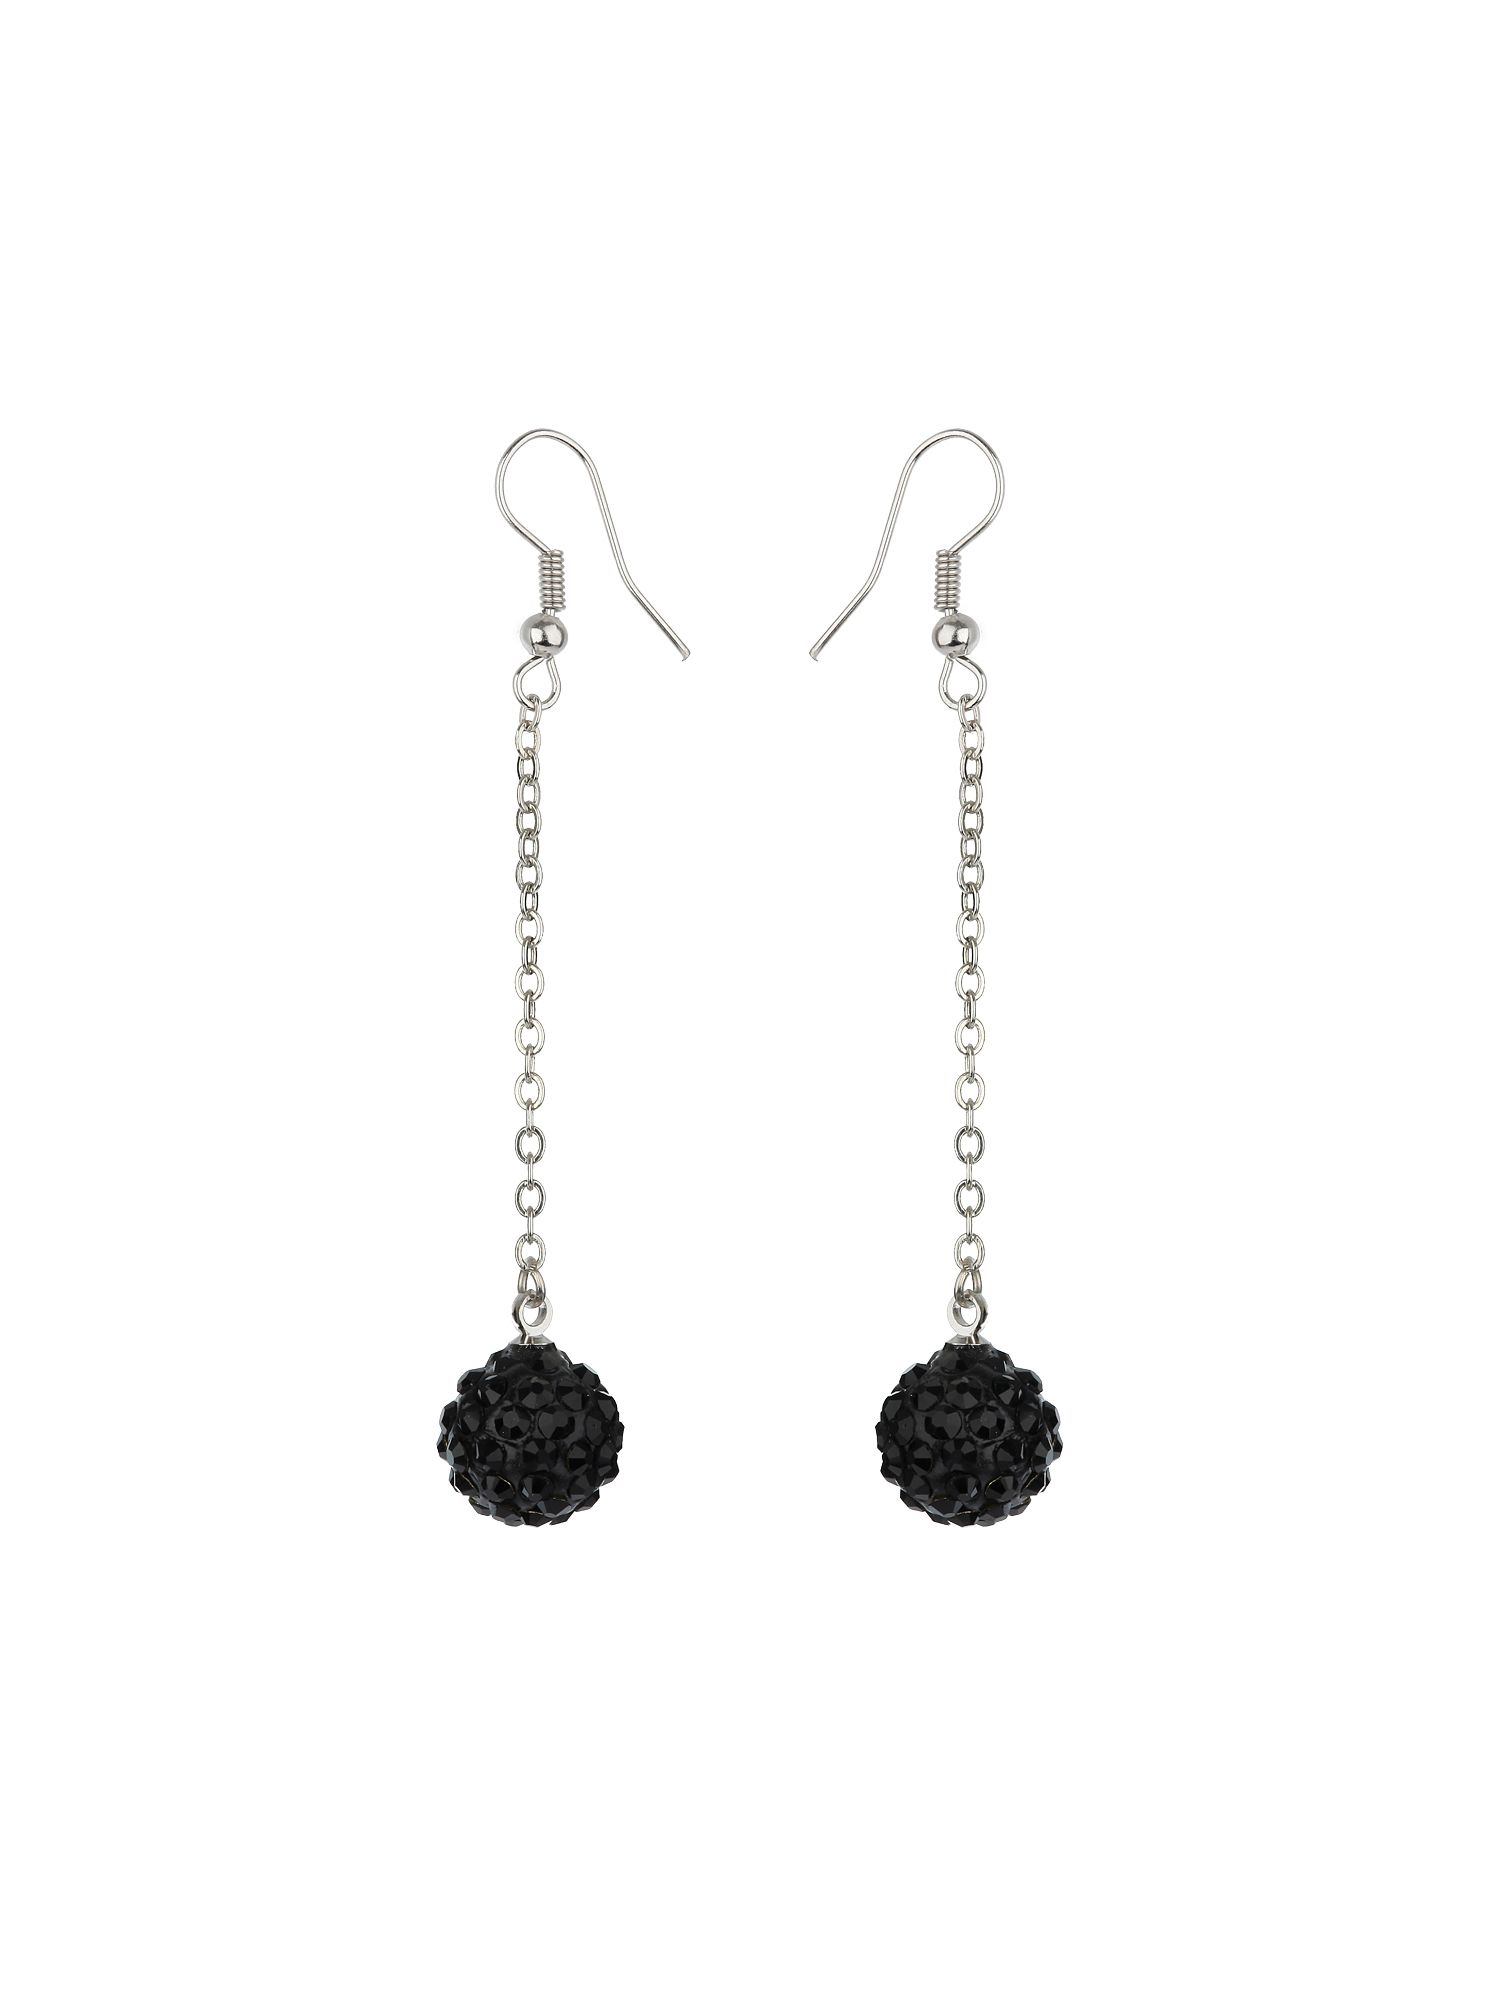 12mm crystal drop earrings